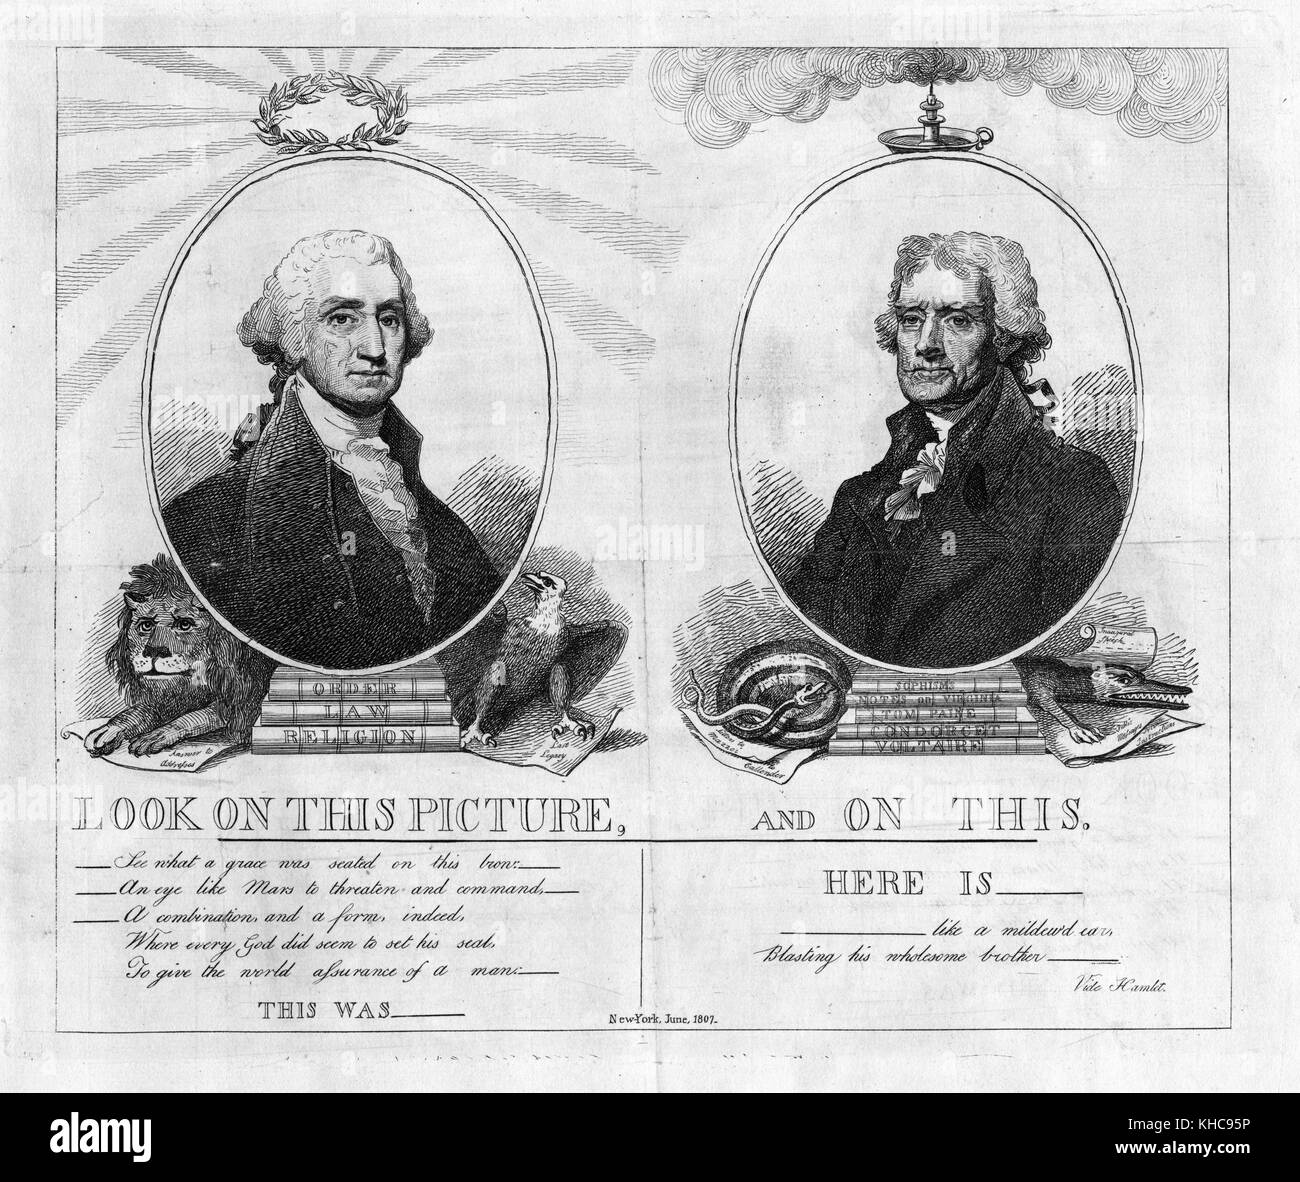 An engraving of a political cartoon comparing George Washington and Thomas Jefferson, using select quotations from - Stock Image